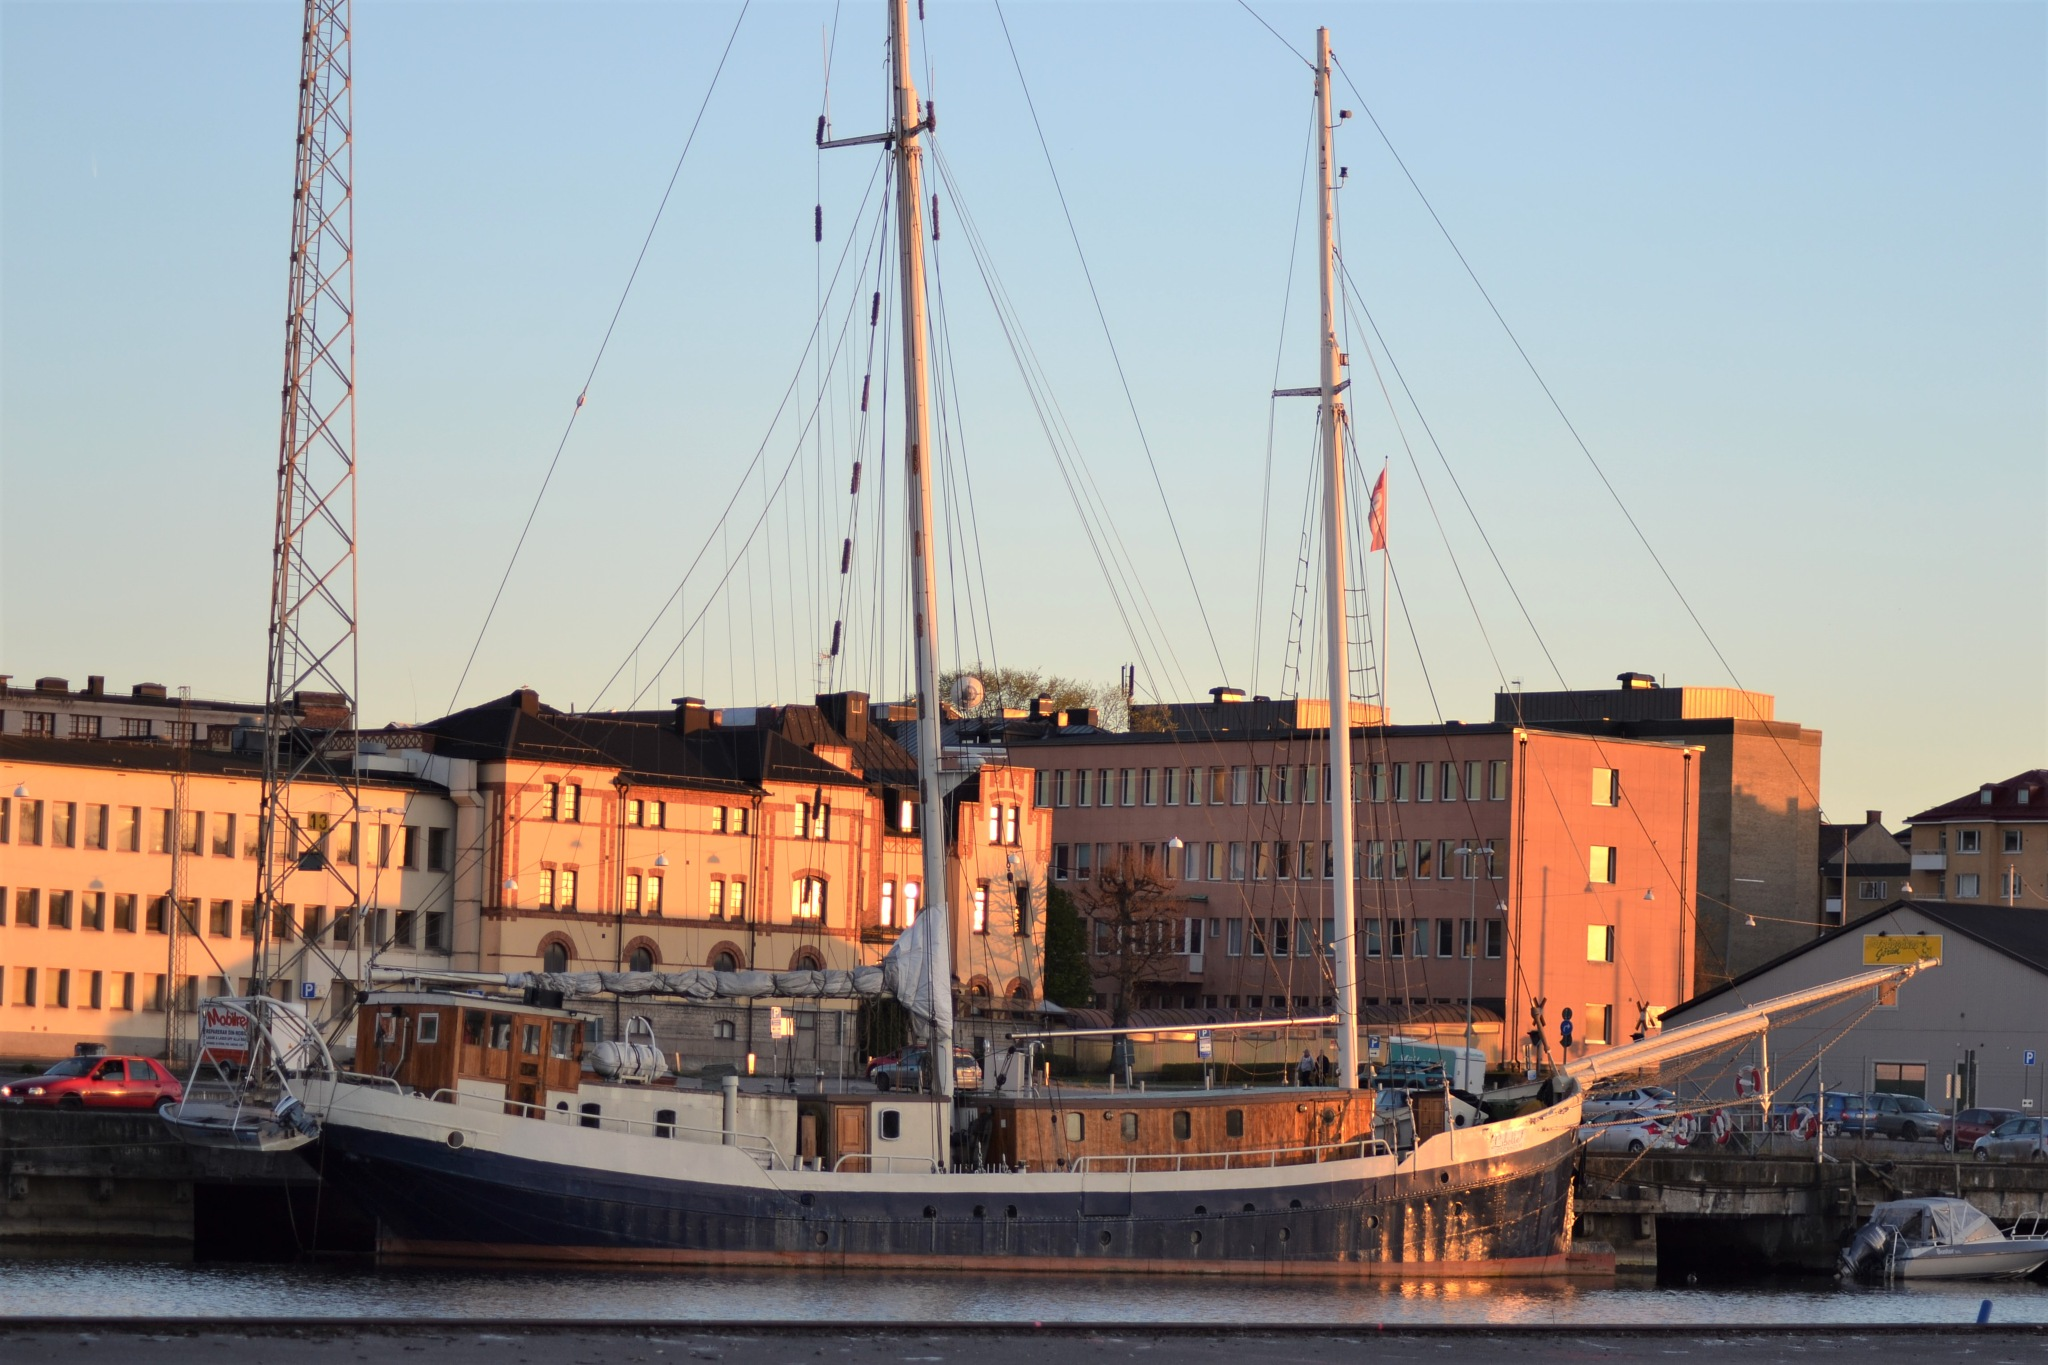 Sailing boat in Norrköping harbor by stefan.andersson3